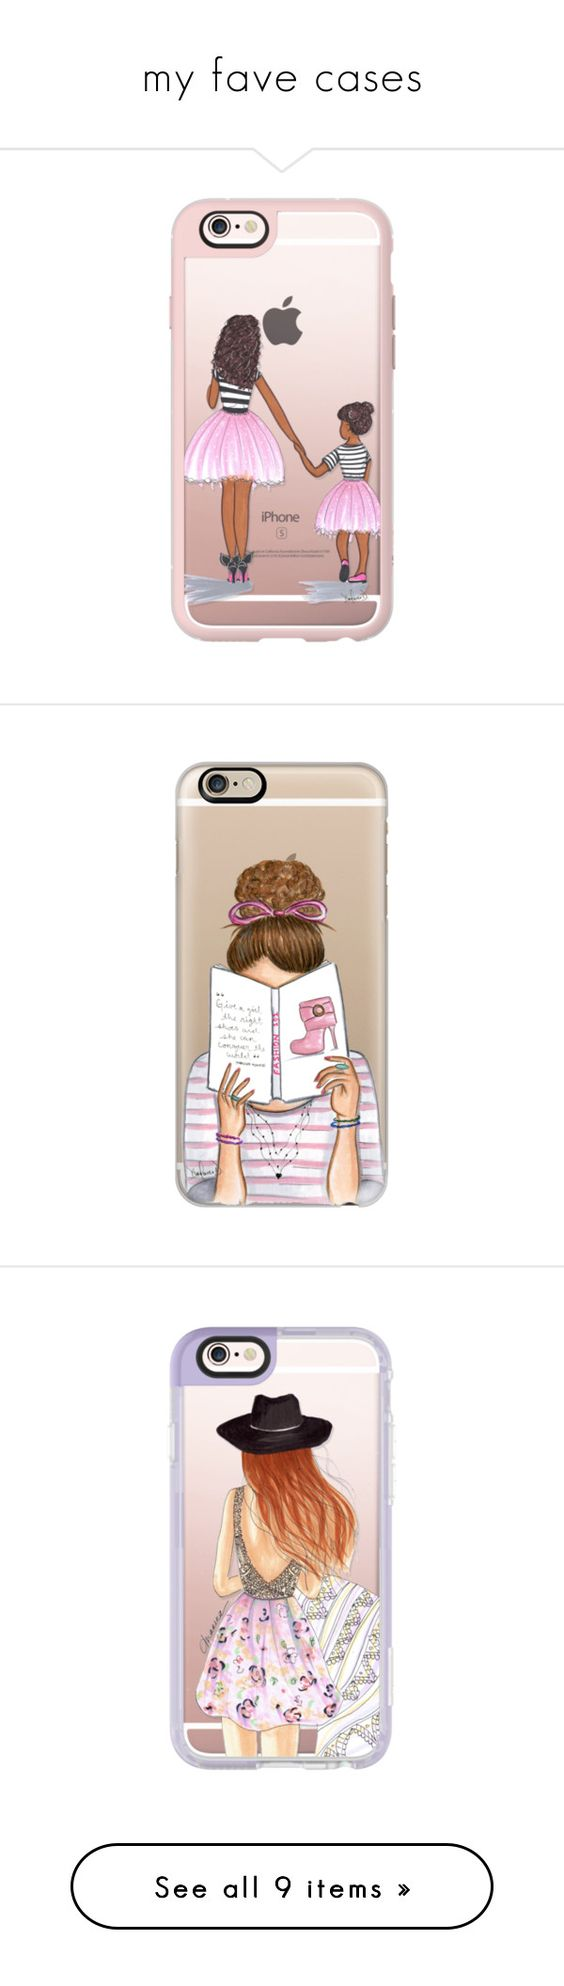 """""""my fave cases"""" by bae01 ❤ liked on Polyvore featuring accessories, tech accessories, phone cases, iphone cases, cell phone cases, phone, iphone hard case, iphone cell phone cases, apple iphone cases and iphone cover case"""